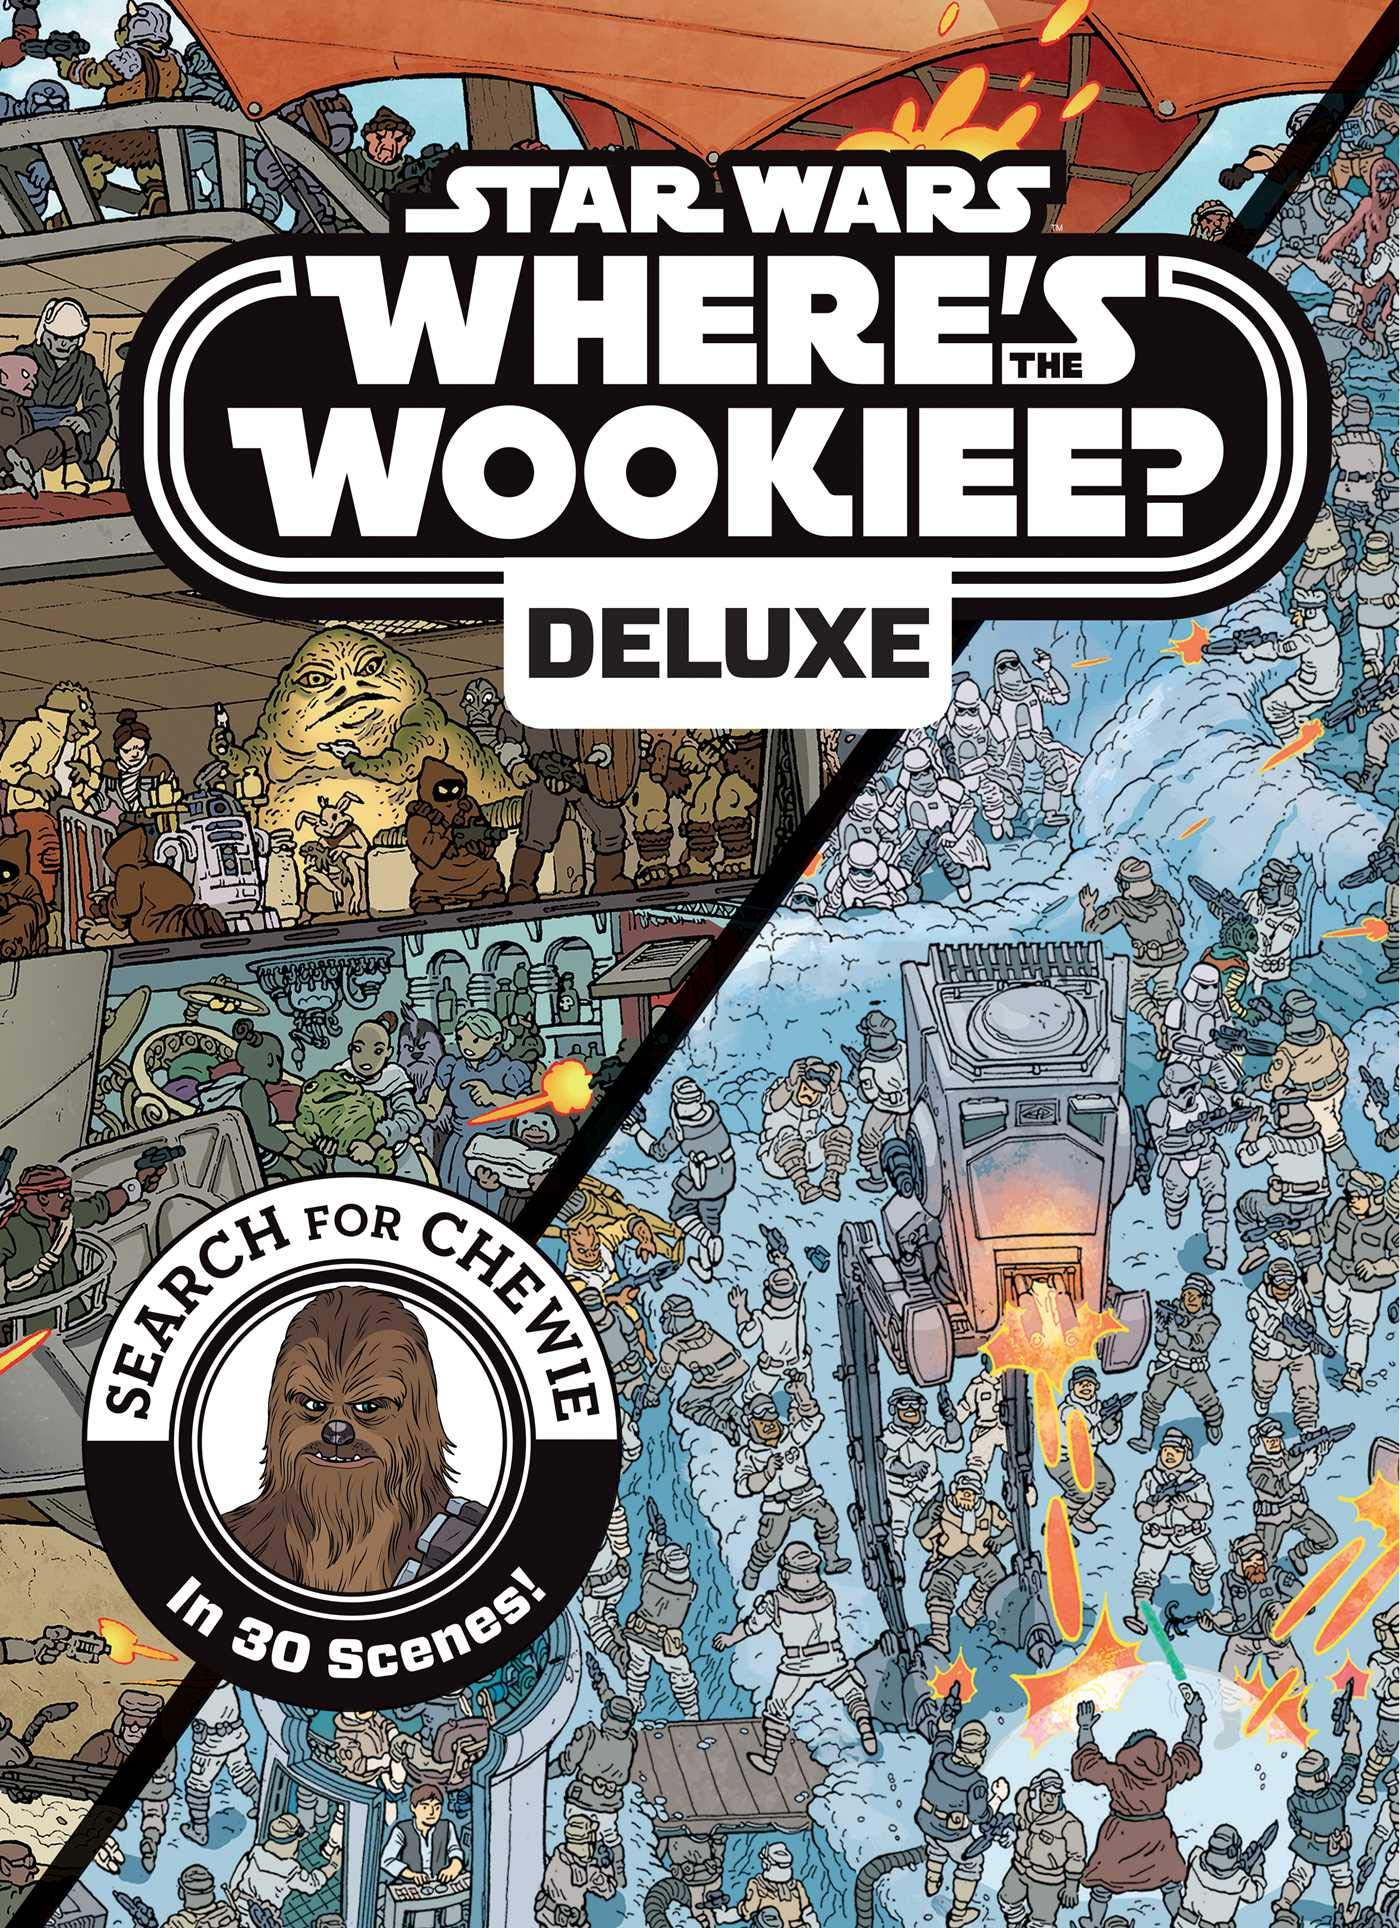 Star Wars: Where's the Wookiee Deluxe